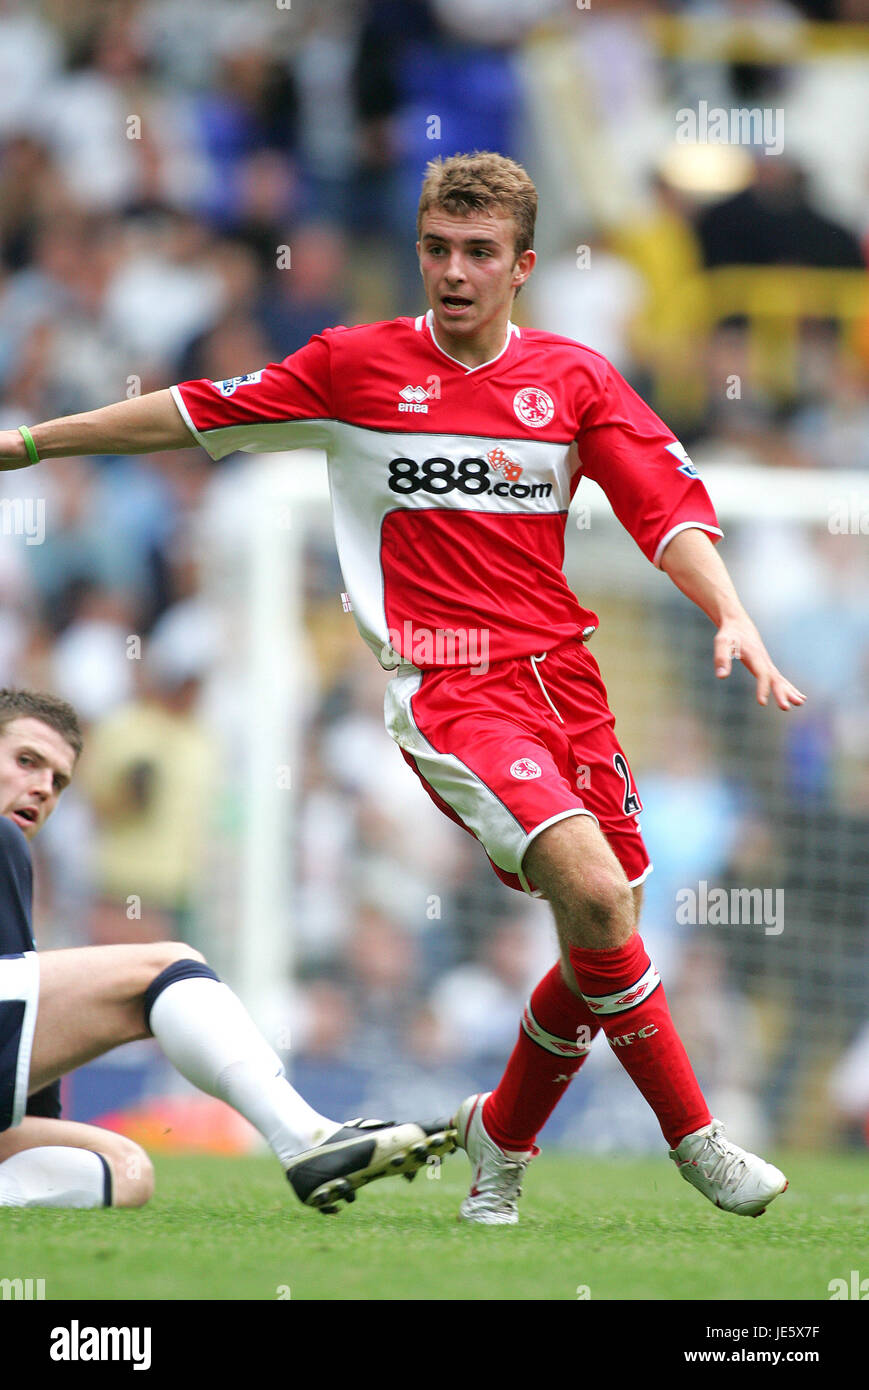 JAMES MORRISON MIDDLESBROUGH FC WHITE HEART LANE TOTTENHAM 20 August 2005 - Stock Image